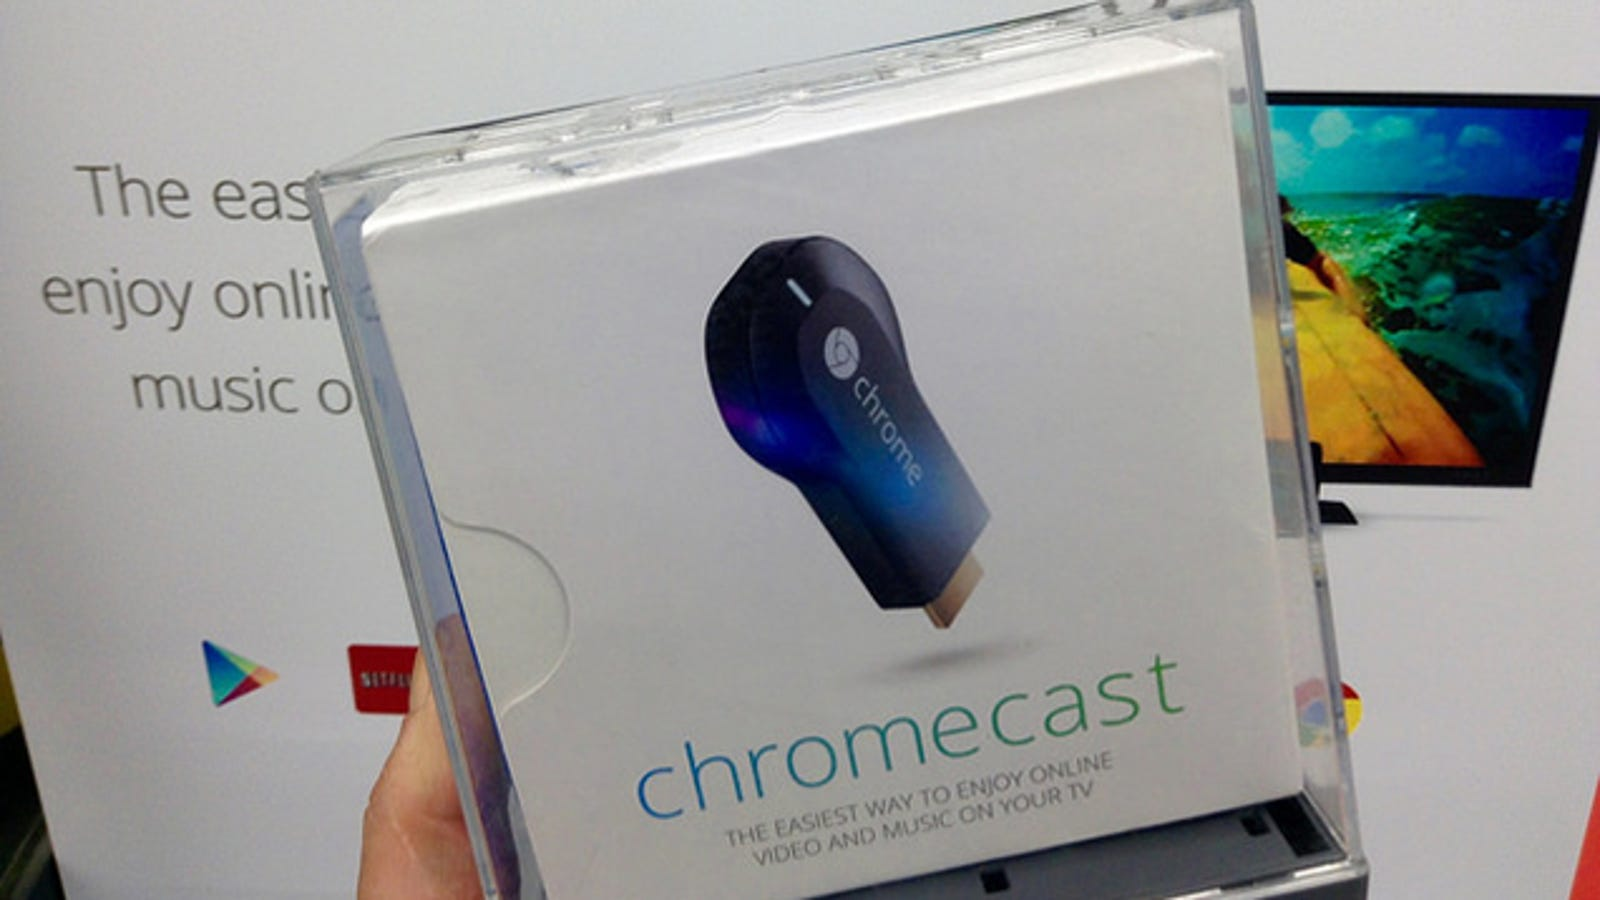 Stream Local Media to a Chromecast Without an Internet